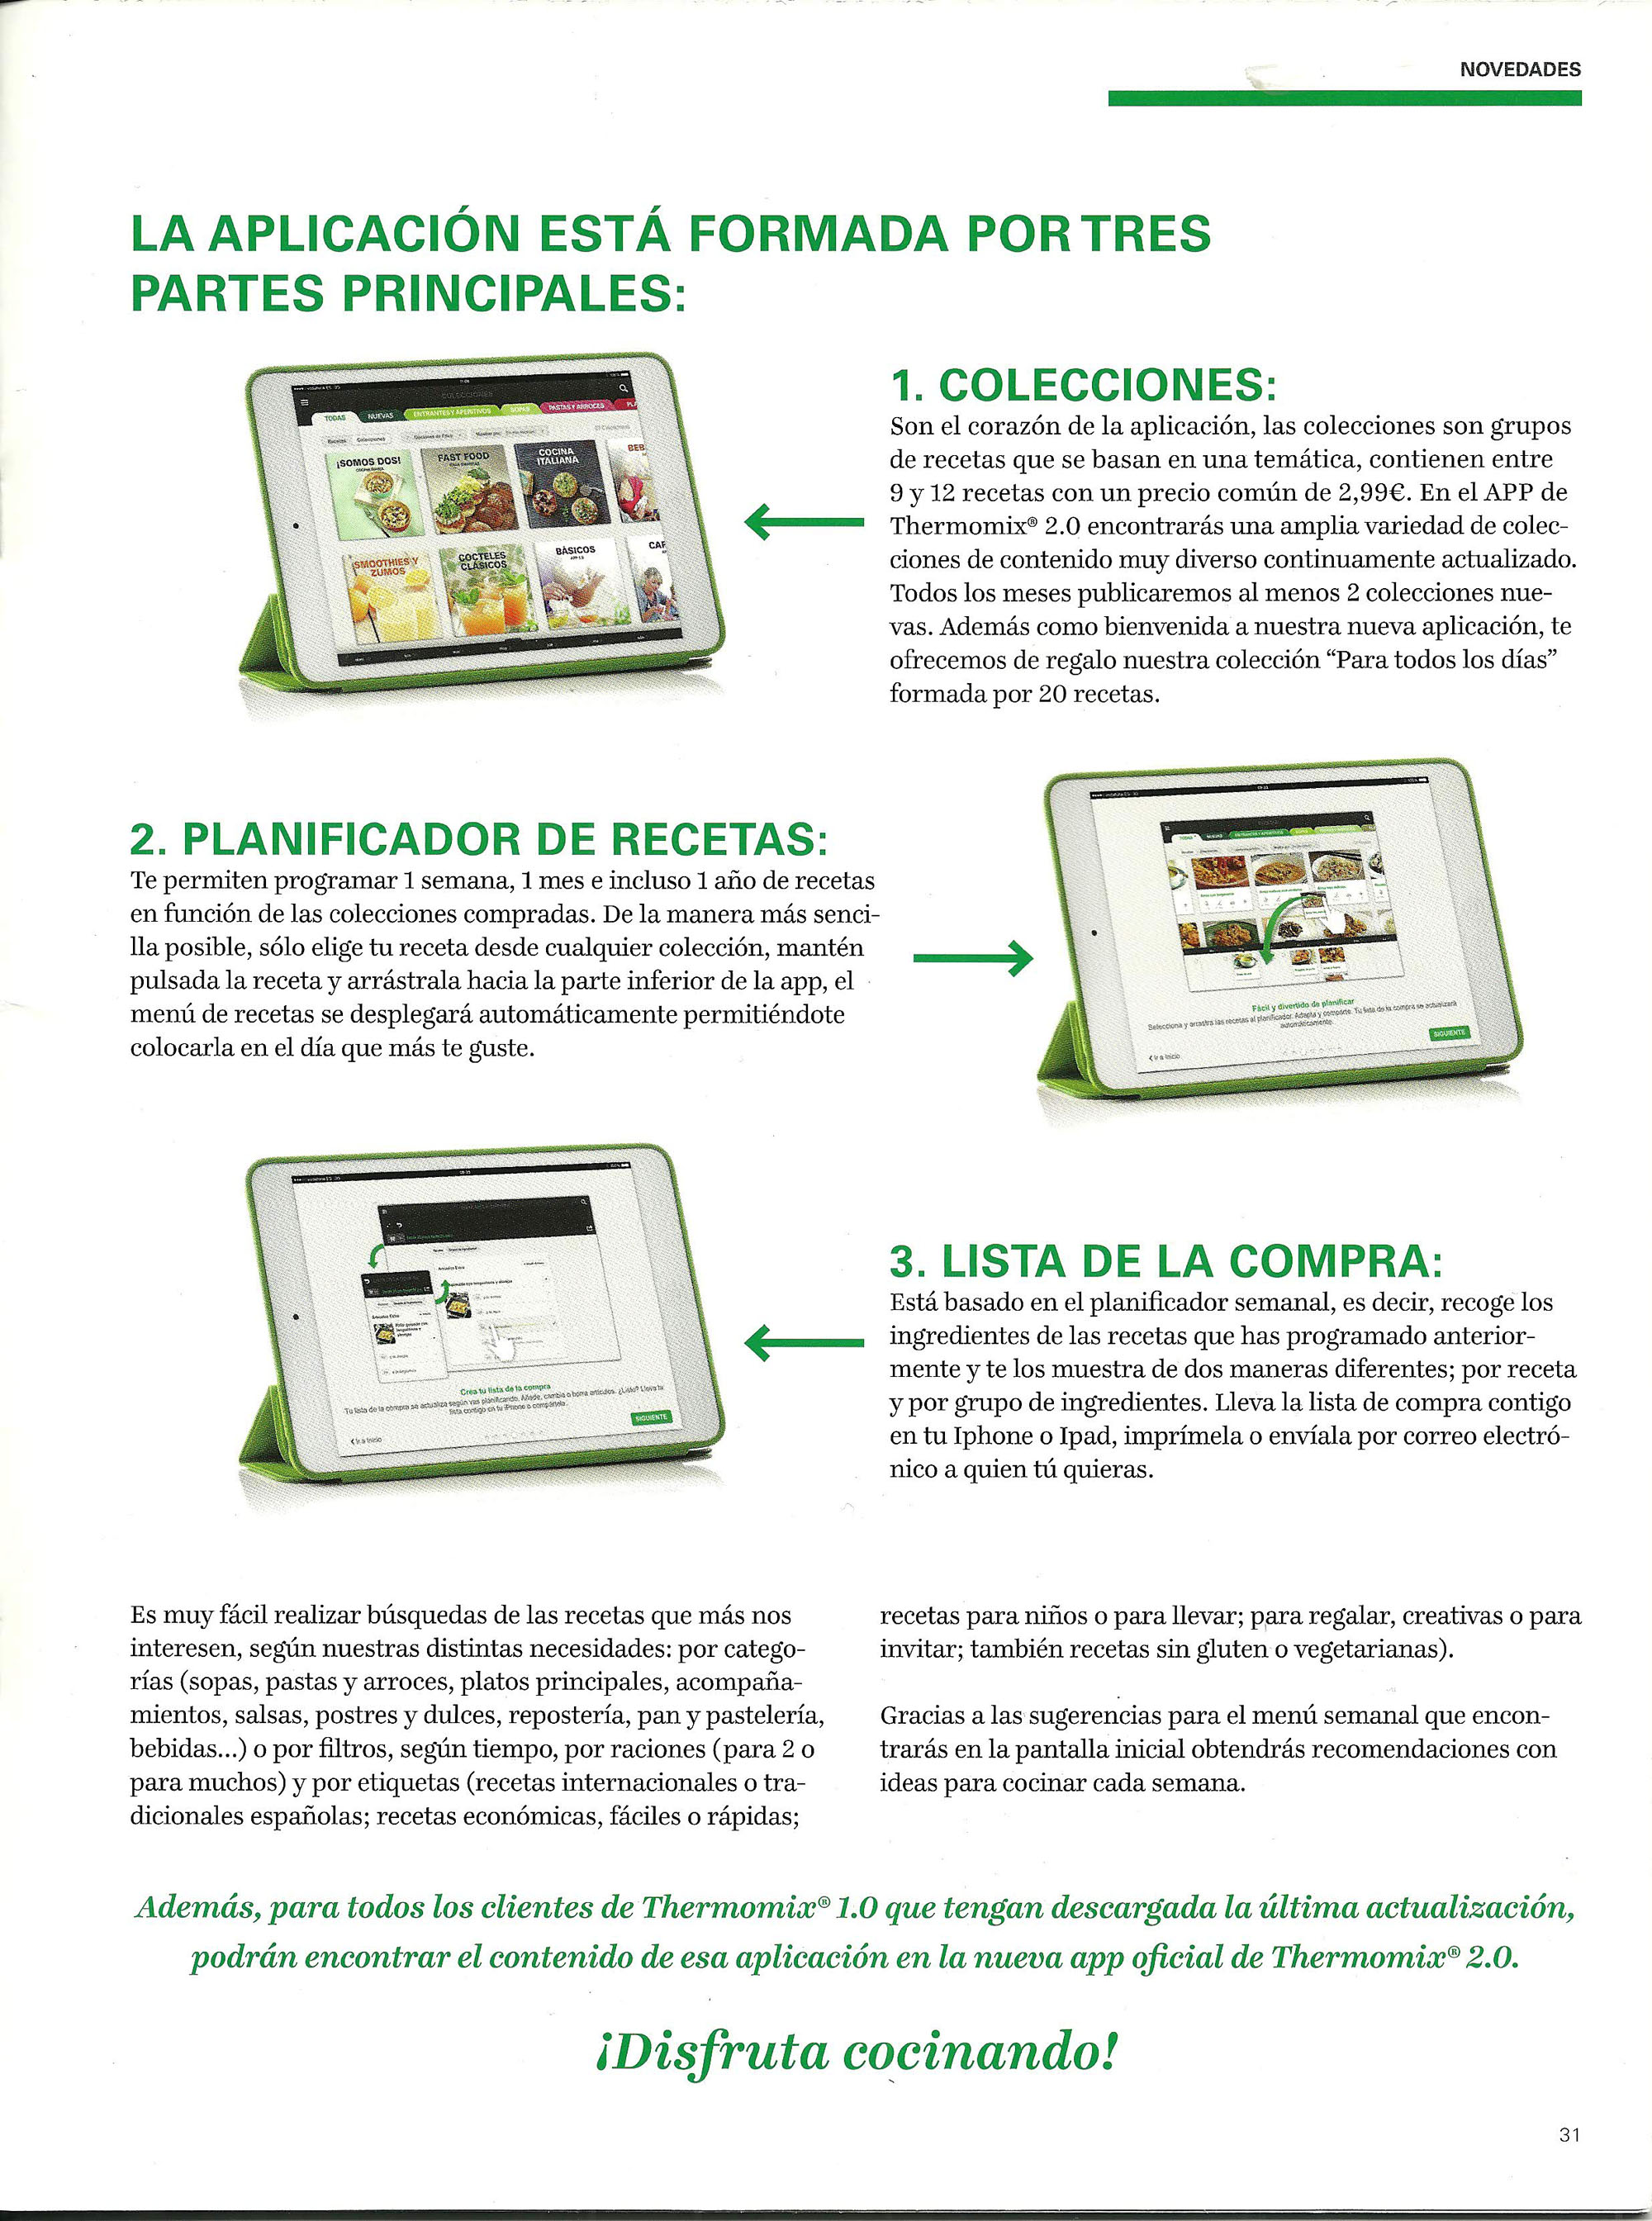 app oficial de Thermomix® para IPHONE y IPAD